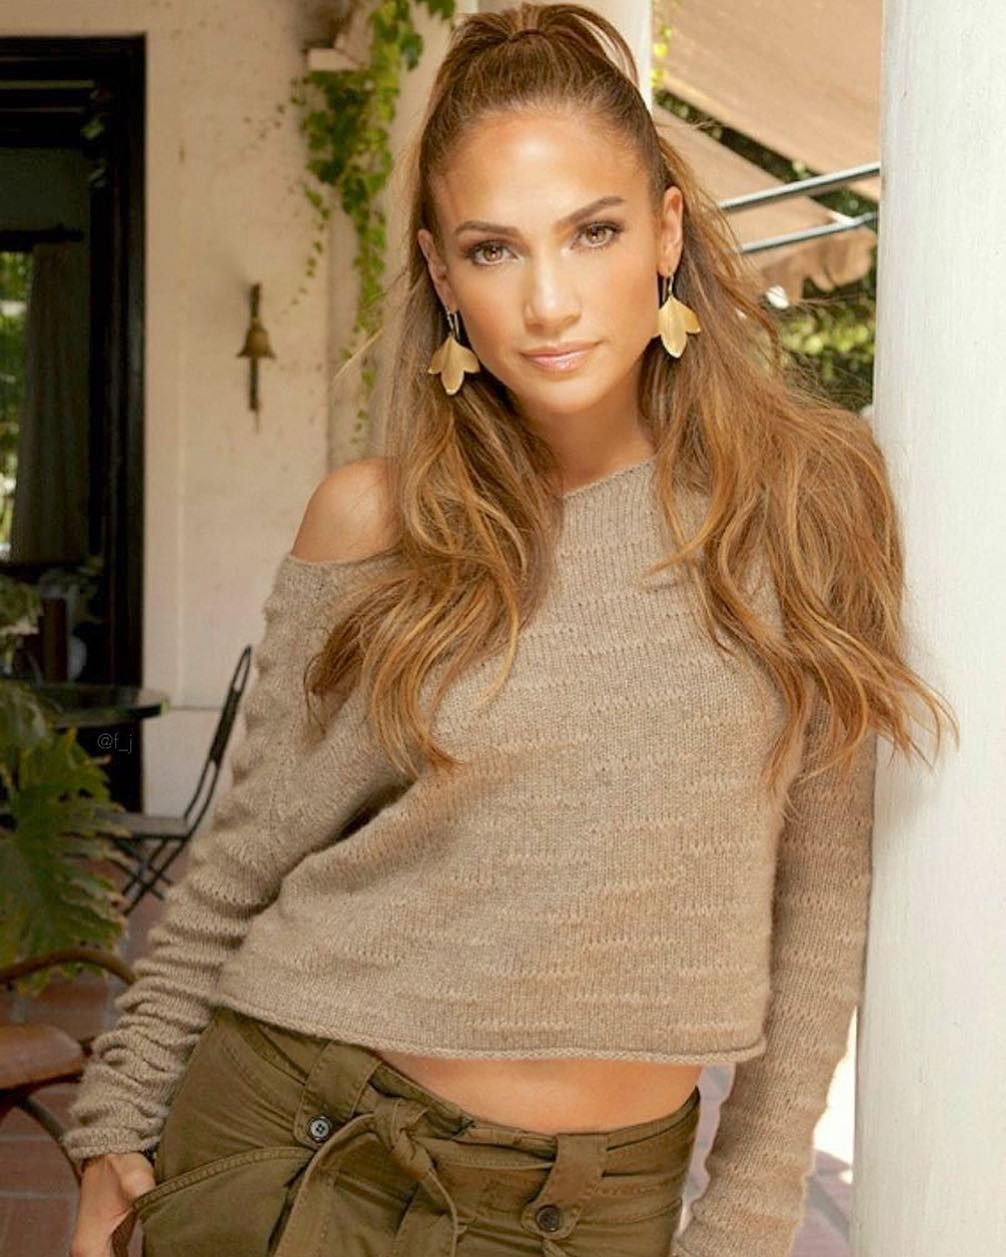 pinnina lvv on my style | pinterest | jennifer lopez and instagram